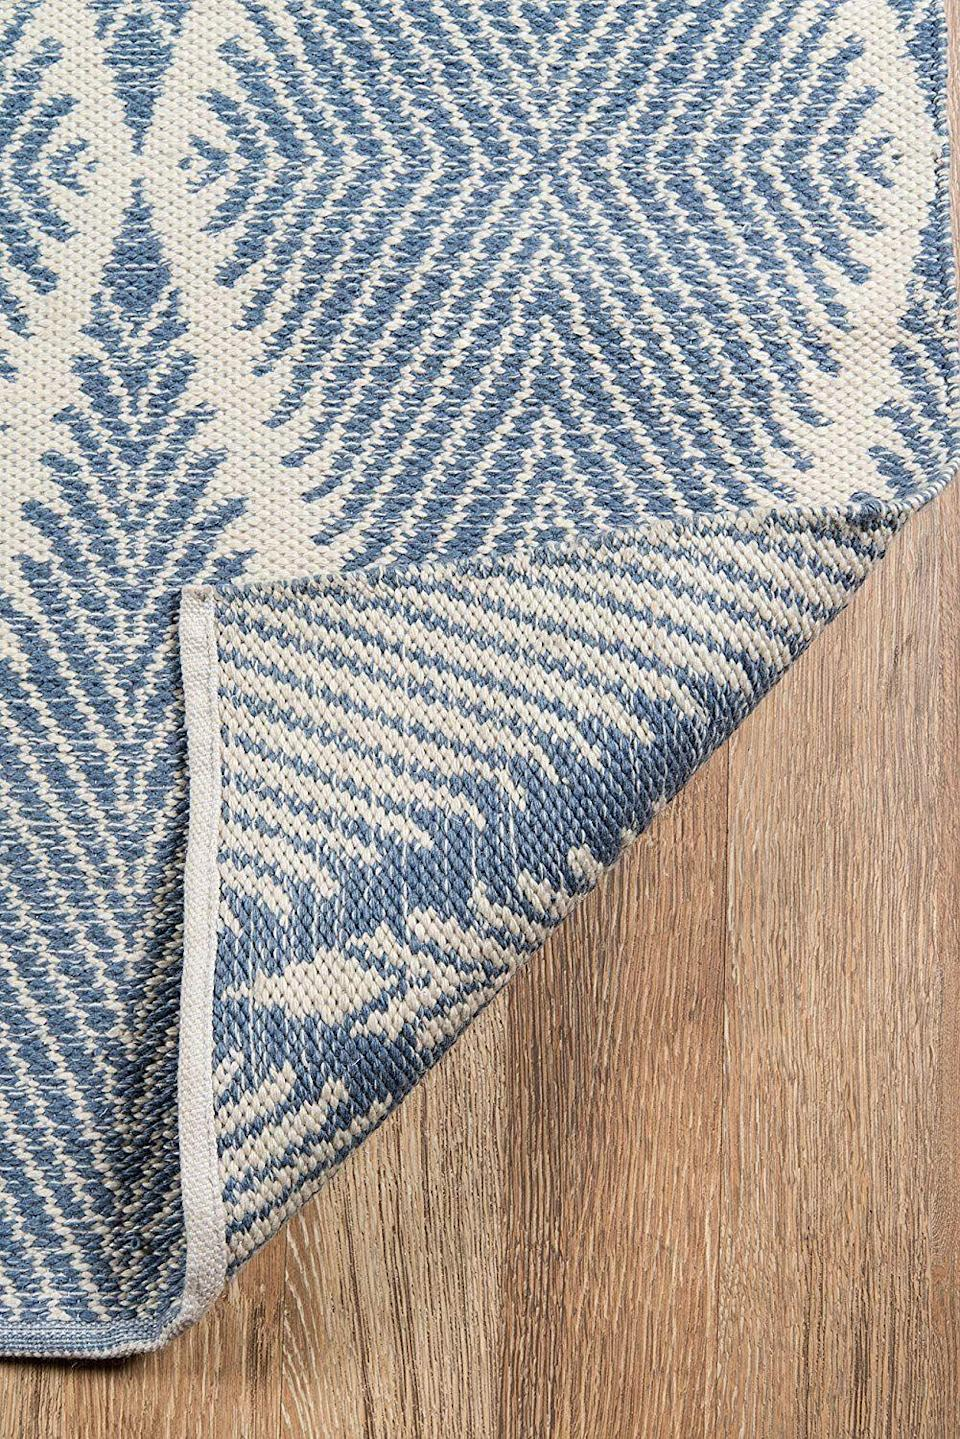 """<h2>Rugs</h2><br><h3>Erin Gates By Momeni River Beacon Indoor-Outdoor Rug </h3><br>Your flooring takes up the most surface area in your home. If your apartment comes with less-than-ideal floors, owning a unique and durable area rug is crucial for styling things up — like this indoor-outdoor style from Erin Gates by Momeni with its artfully handwoven blue hues.<br><br><em>Shop</em> <a href=""""https://amzn.to/2Y8PpdI"""" rel=""""nofollow noopener"""" target=""""_blank"""" data-ylk=""""slk:Amazon"""" class=""""link rapid-noclick-resp""""><strong><em>Amazon</em></strong></a><br><br><strong>Erin Gates by Momeni</strong> River Beacon Denim Indoor-Outdoor Rug (5' X 7'6""""), $, available at <a href=""""https://amzn.to/3A5q9m2"""" rel=""""nofollow noopener"""" target=""""_blank"""" data-ylk=""""slk:Amazon"""" class=""""link rapid-noclick-resp"""">Amazon</a>"""